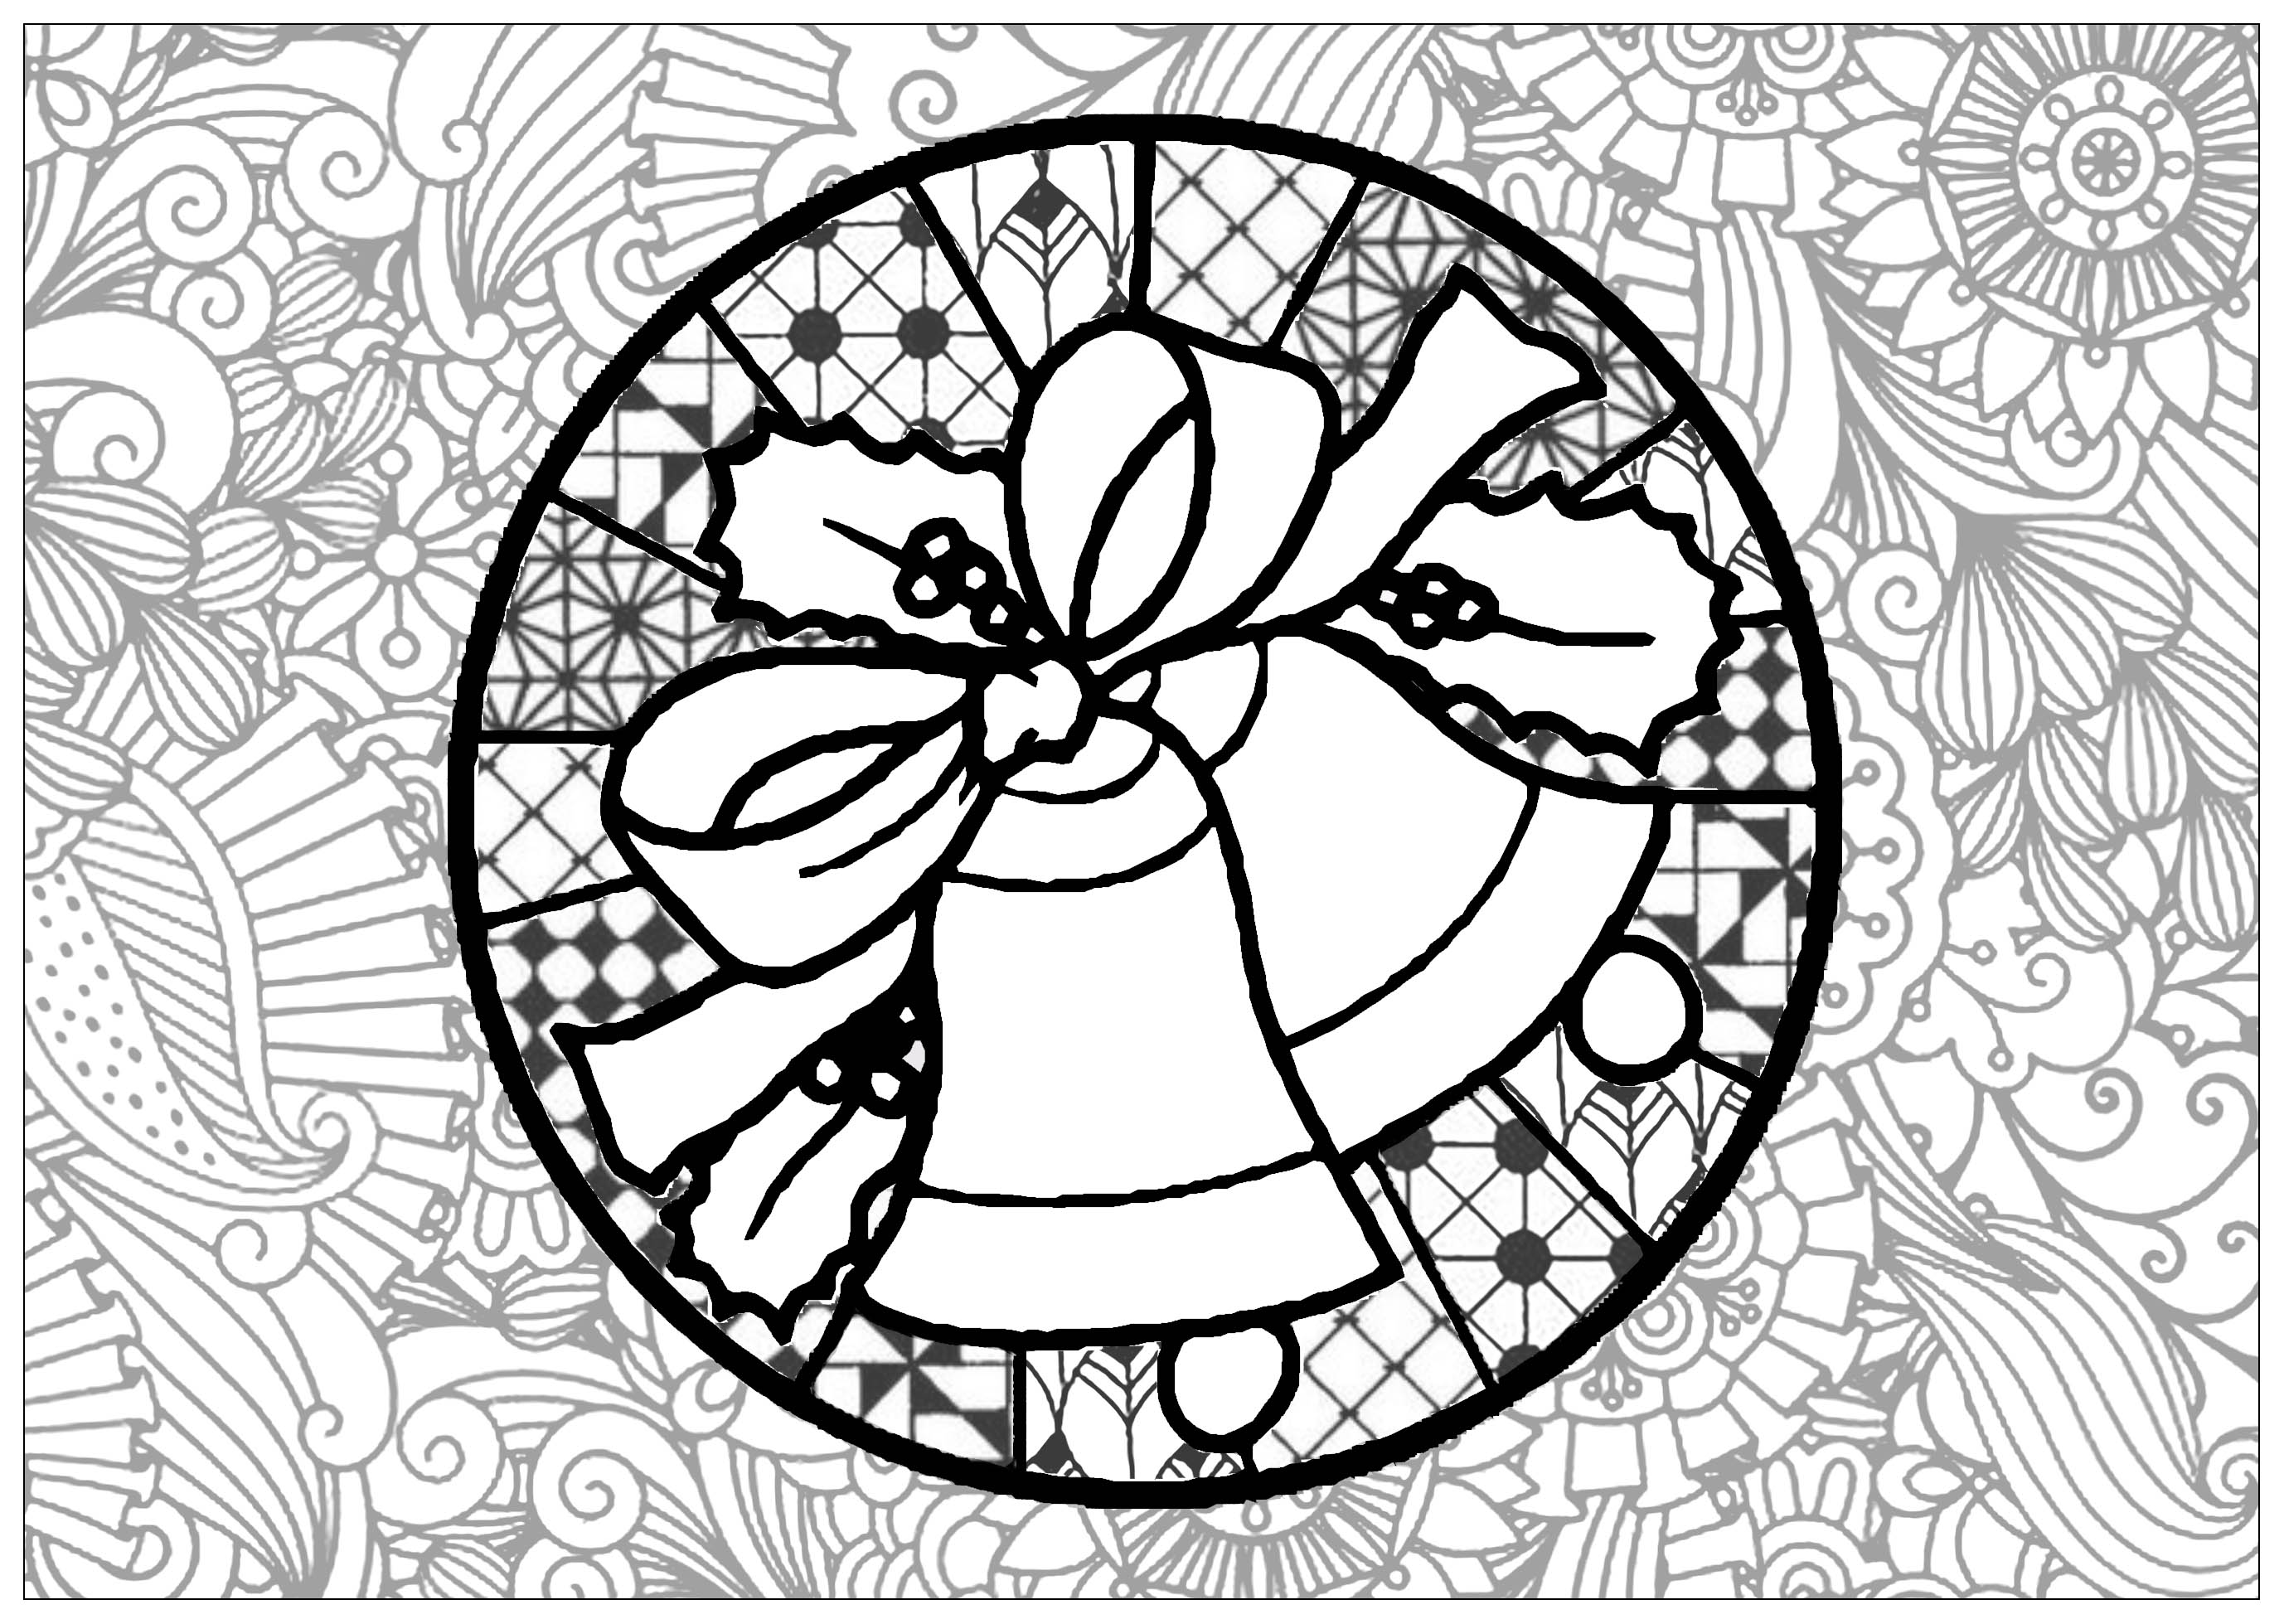 Very complex coloring page, with the Christmas Bells and many different patterns